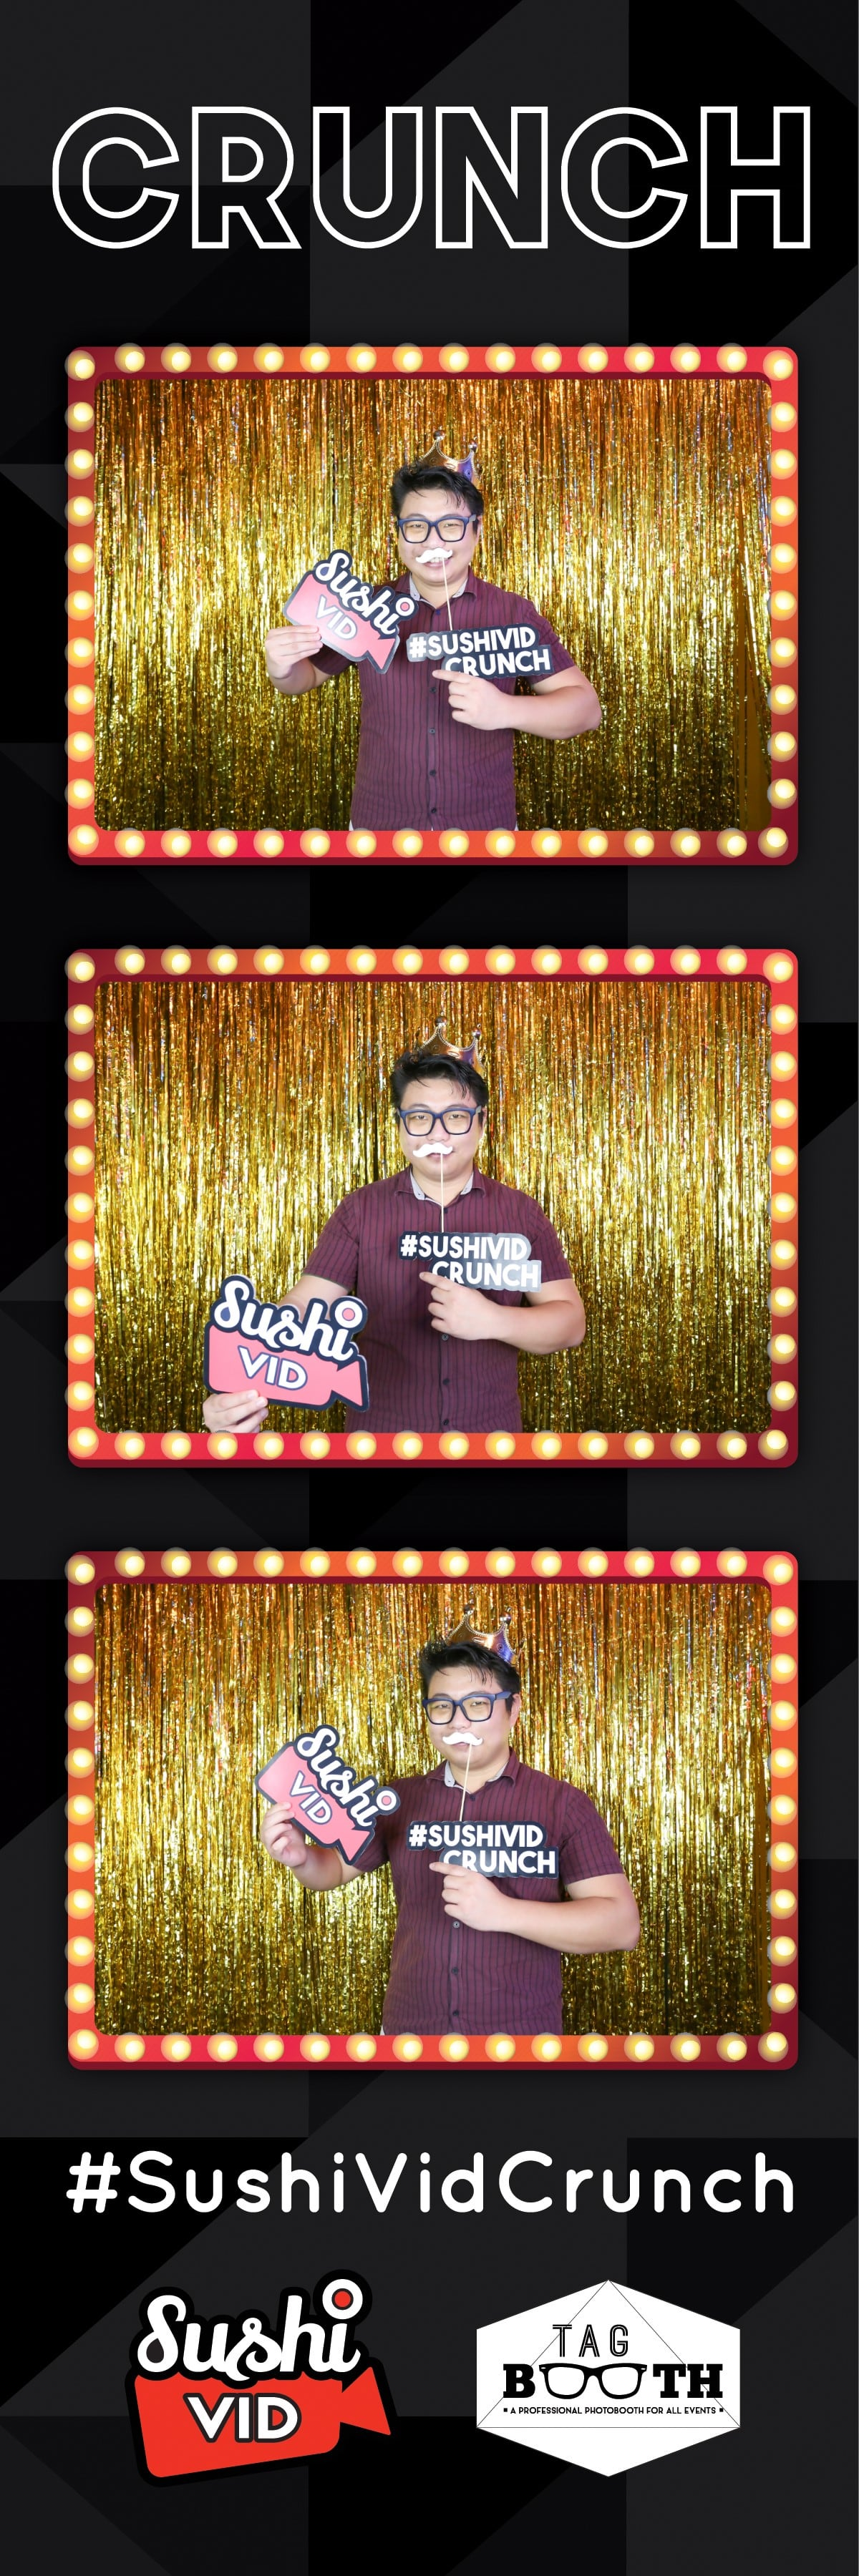 Sushivid+crunch+tagbooth1+36